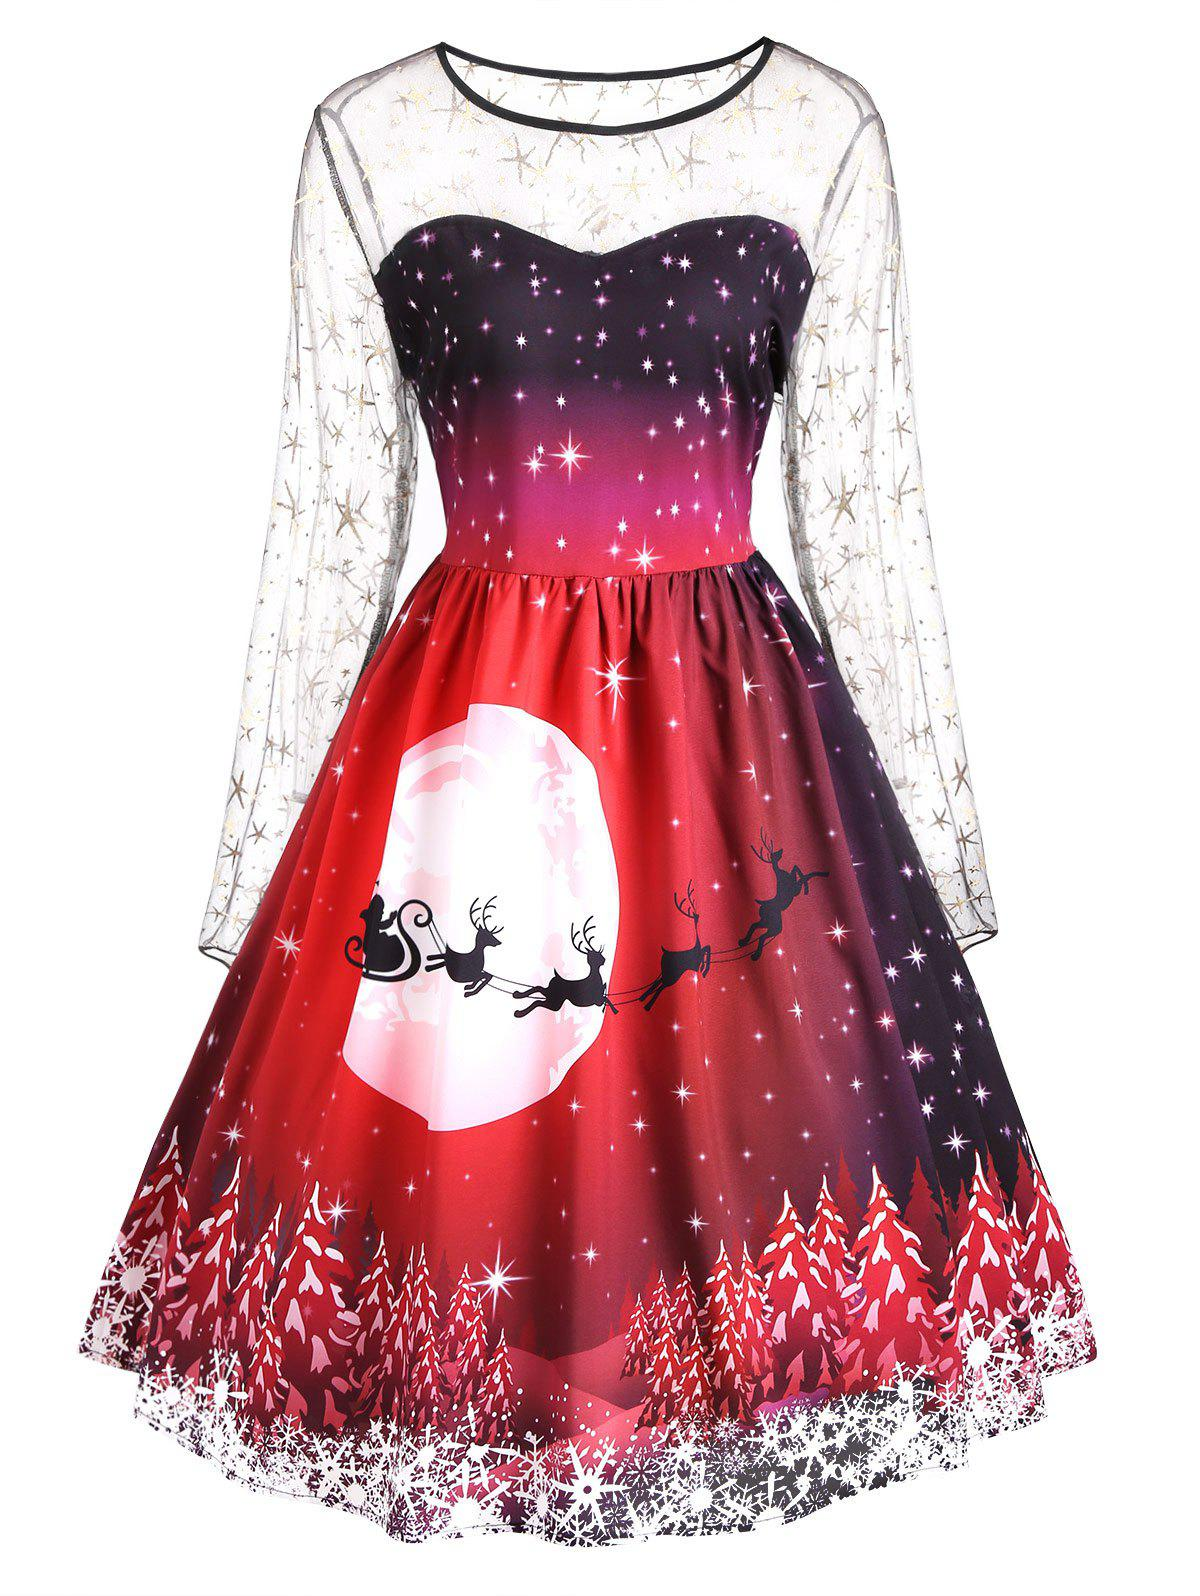 Plus Size Christmas Print Mesh Panel DressWOMEN<br><br>Size: XL; Color: COLORMIX; Style: Vintage; Material: Polyester; Silhouette: A-Line; Dresses Length: Mid-Calf; Neckline: Round Collar; Sleeve Length: Long Sleeves; Embellishment: Panel; Pattern Type: Print,Star; With Belt: No; Season: Fall,Spring; Weight: 0.2800kg; Package Contents: 1 x Dress;